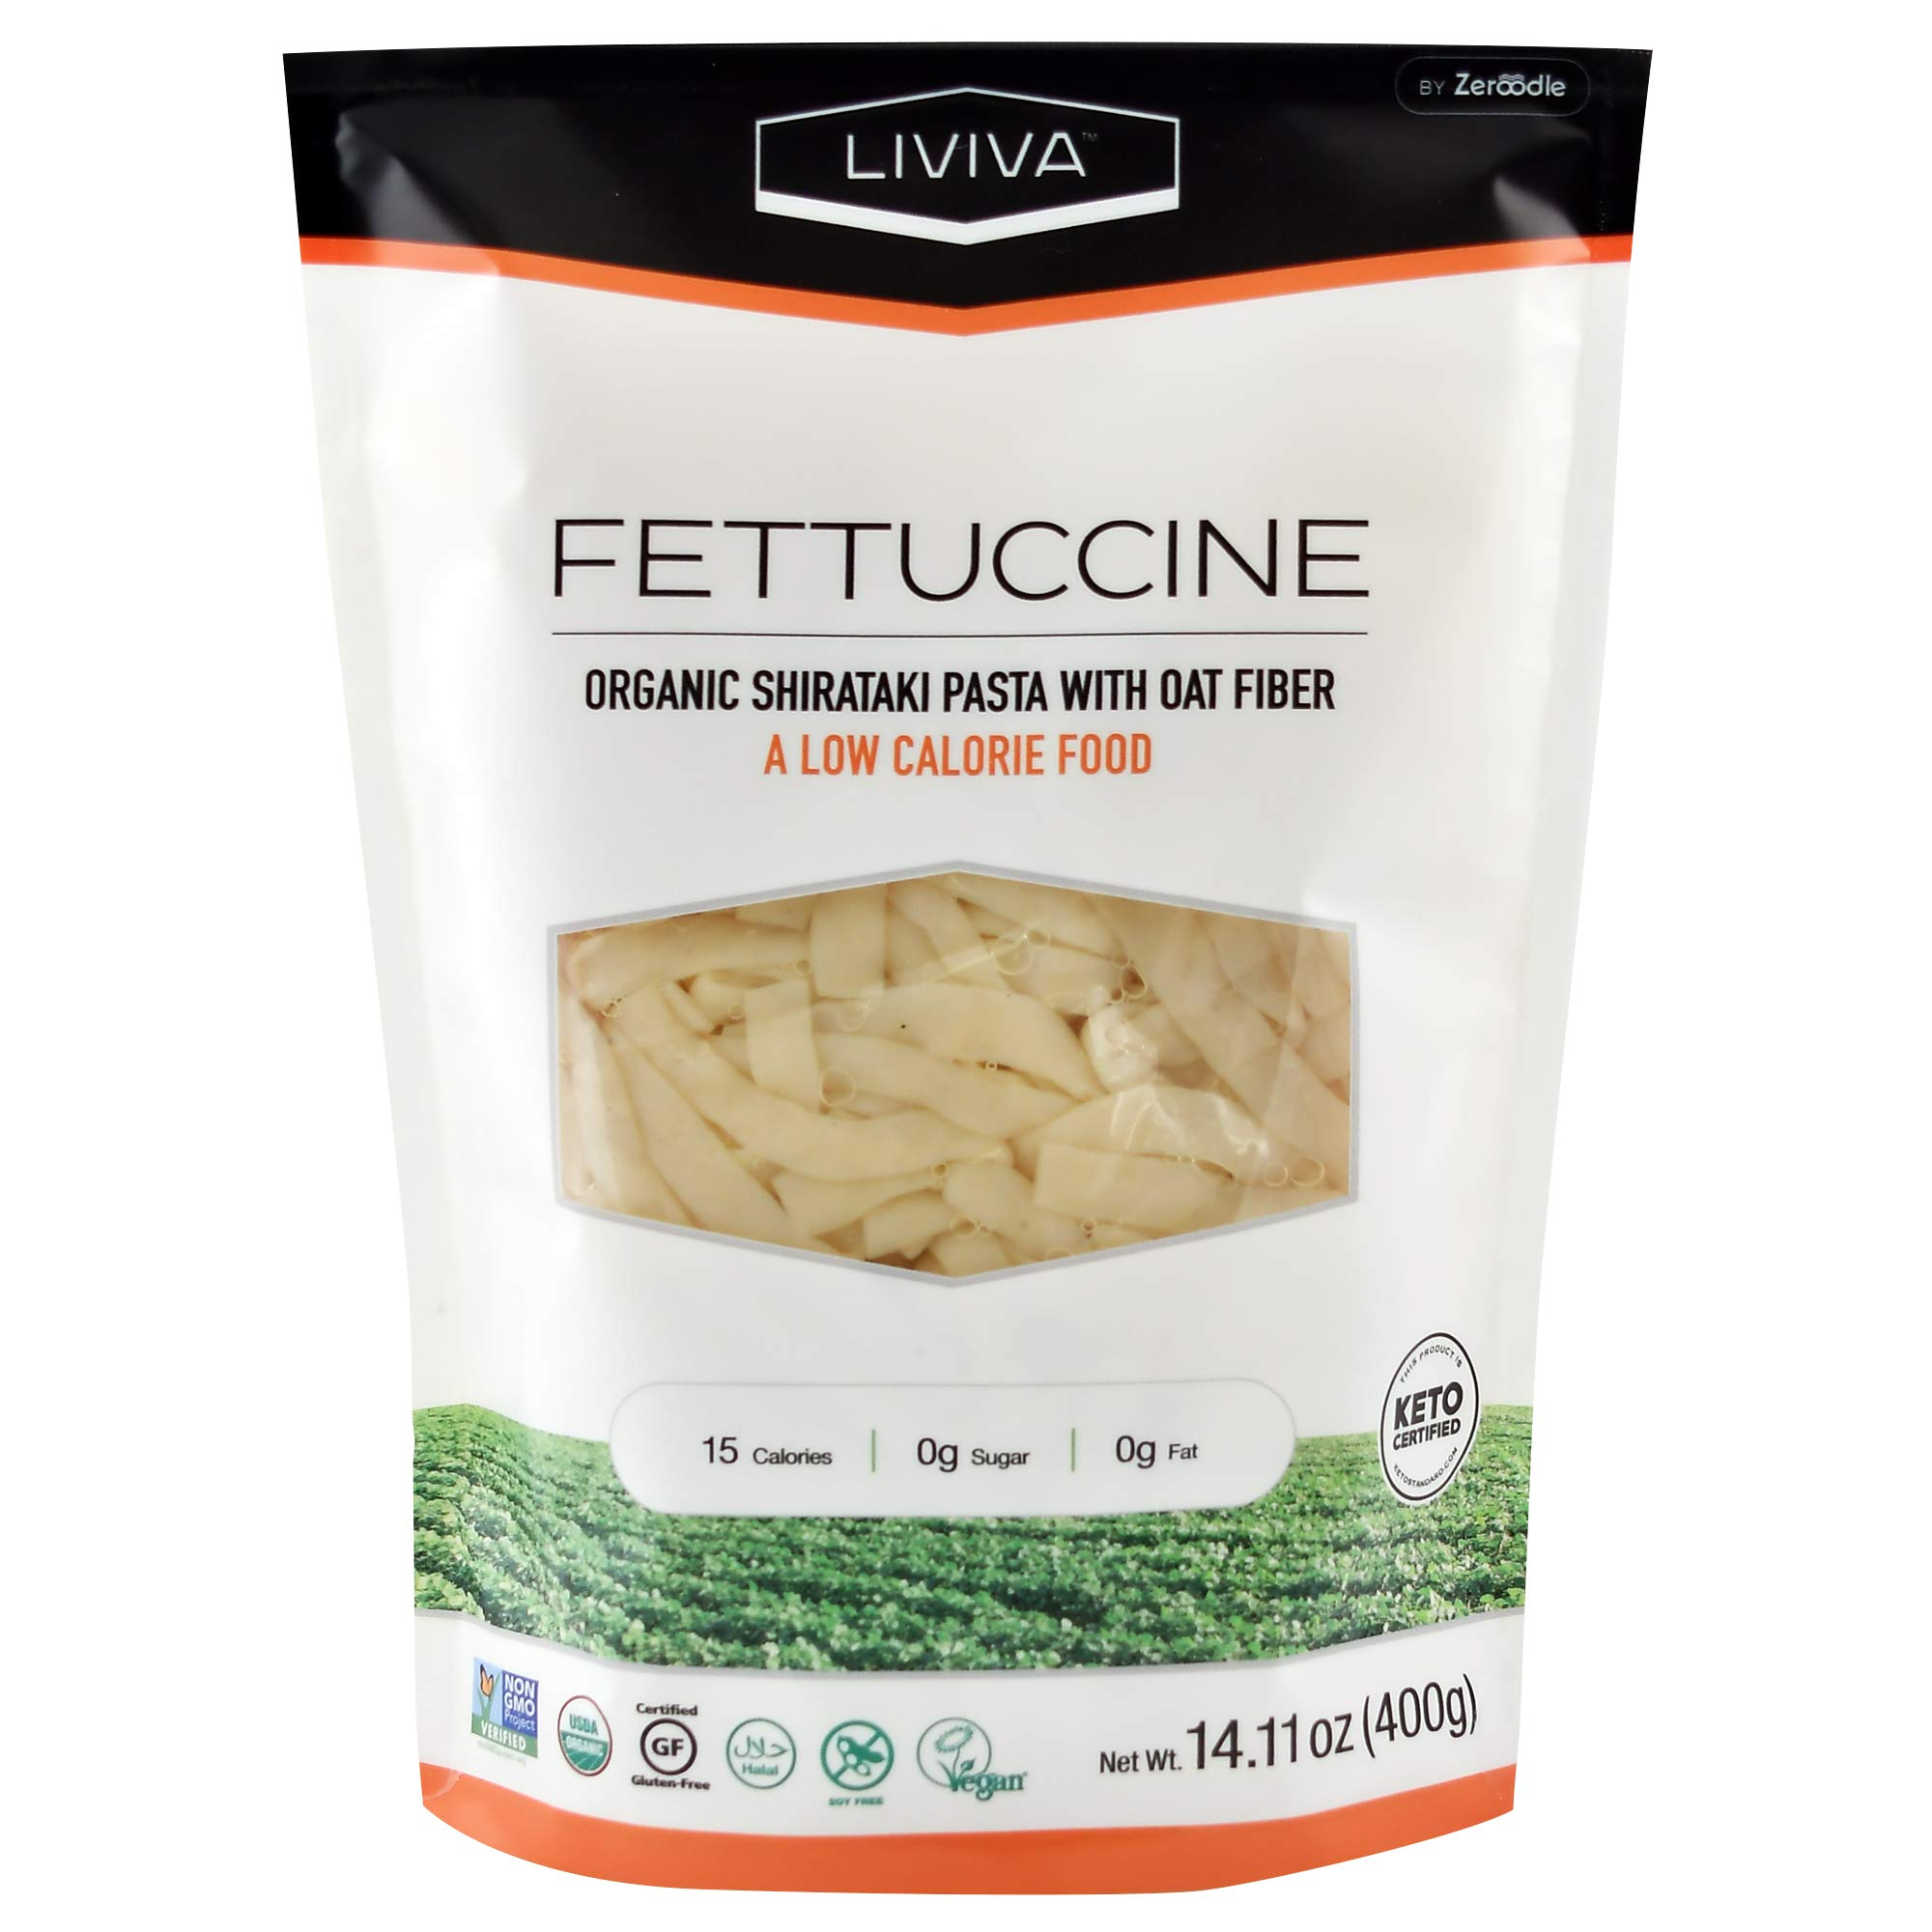 LIVIVA Low Calorie Keto-Certified Organic Shirataki Fettuccine 14 Ounce (Pack of 6) by Zeroodle